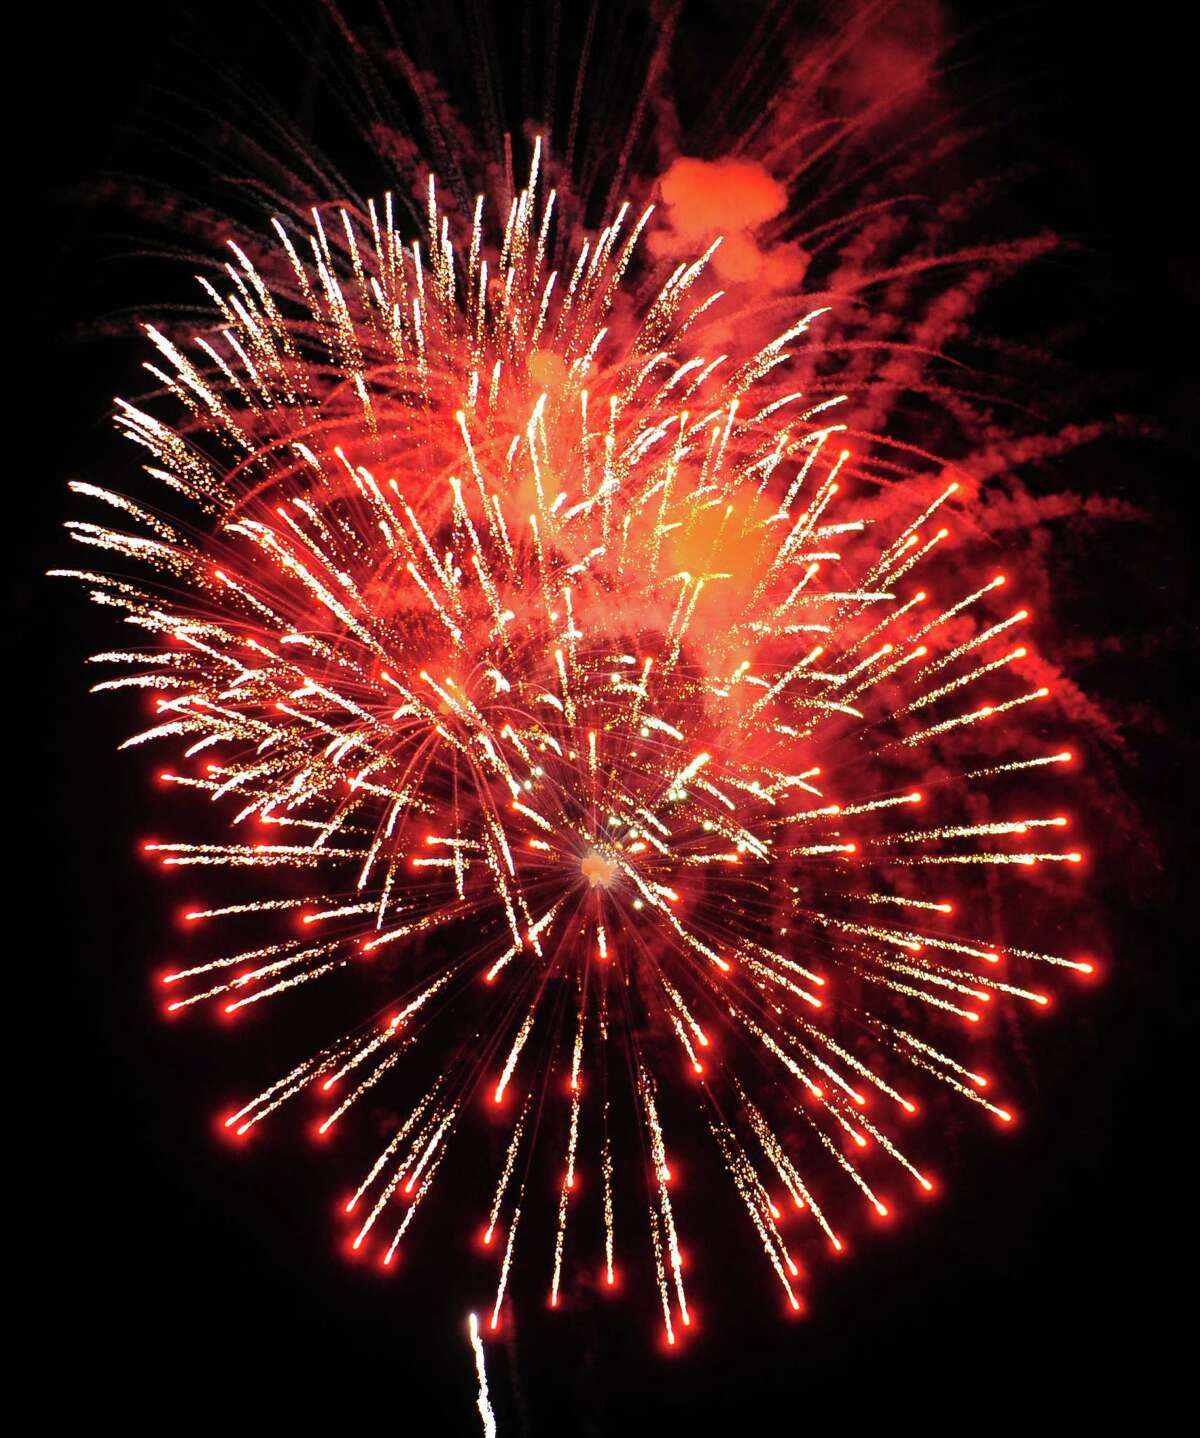 There is no shortage of fireworks displays across the state this July Fourth weekend.